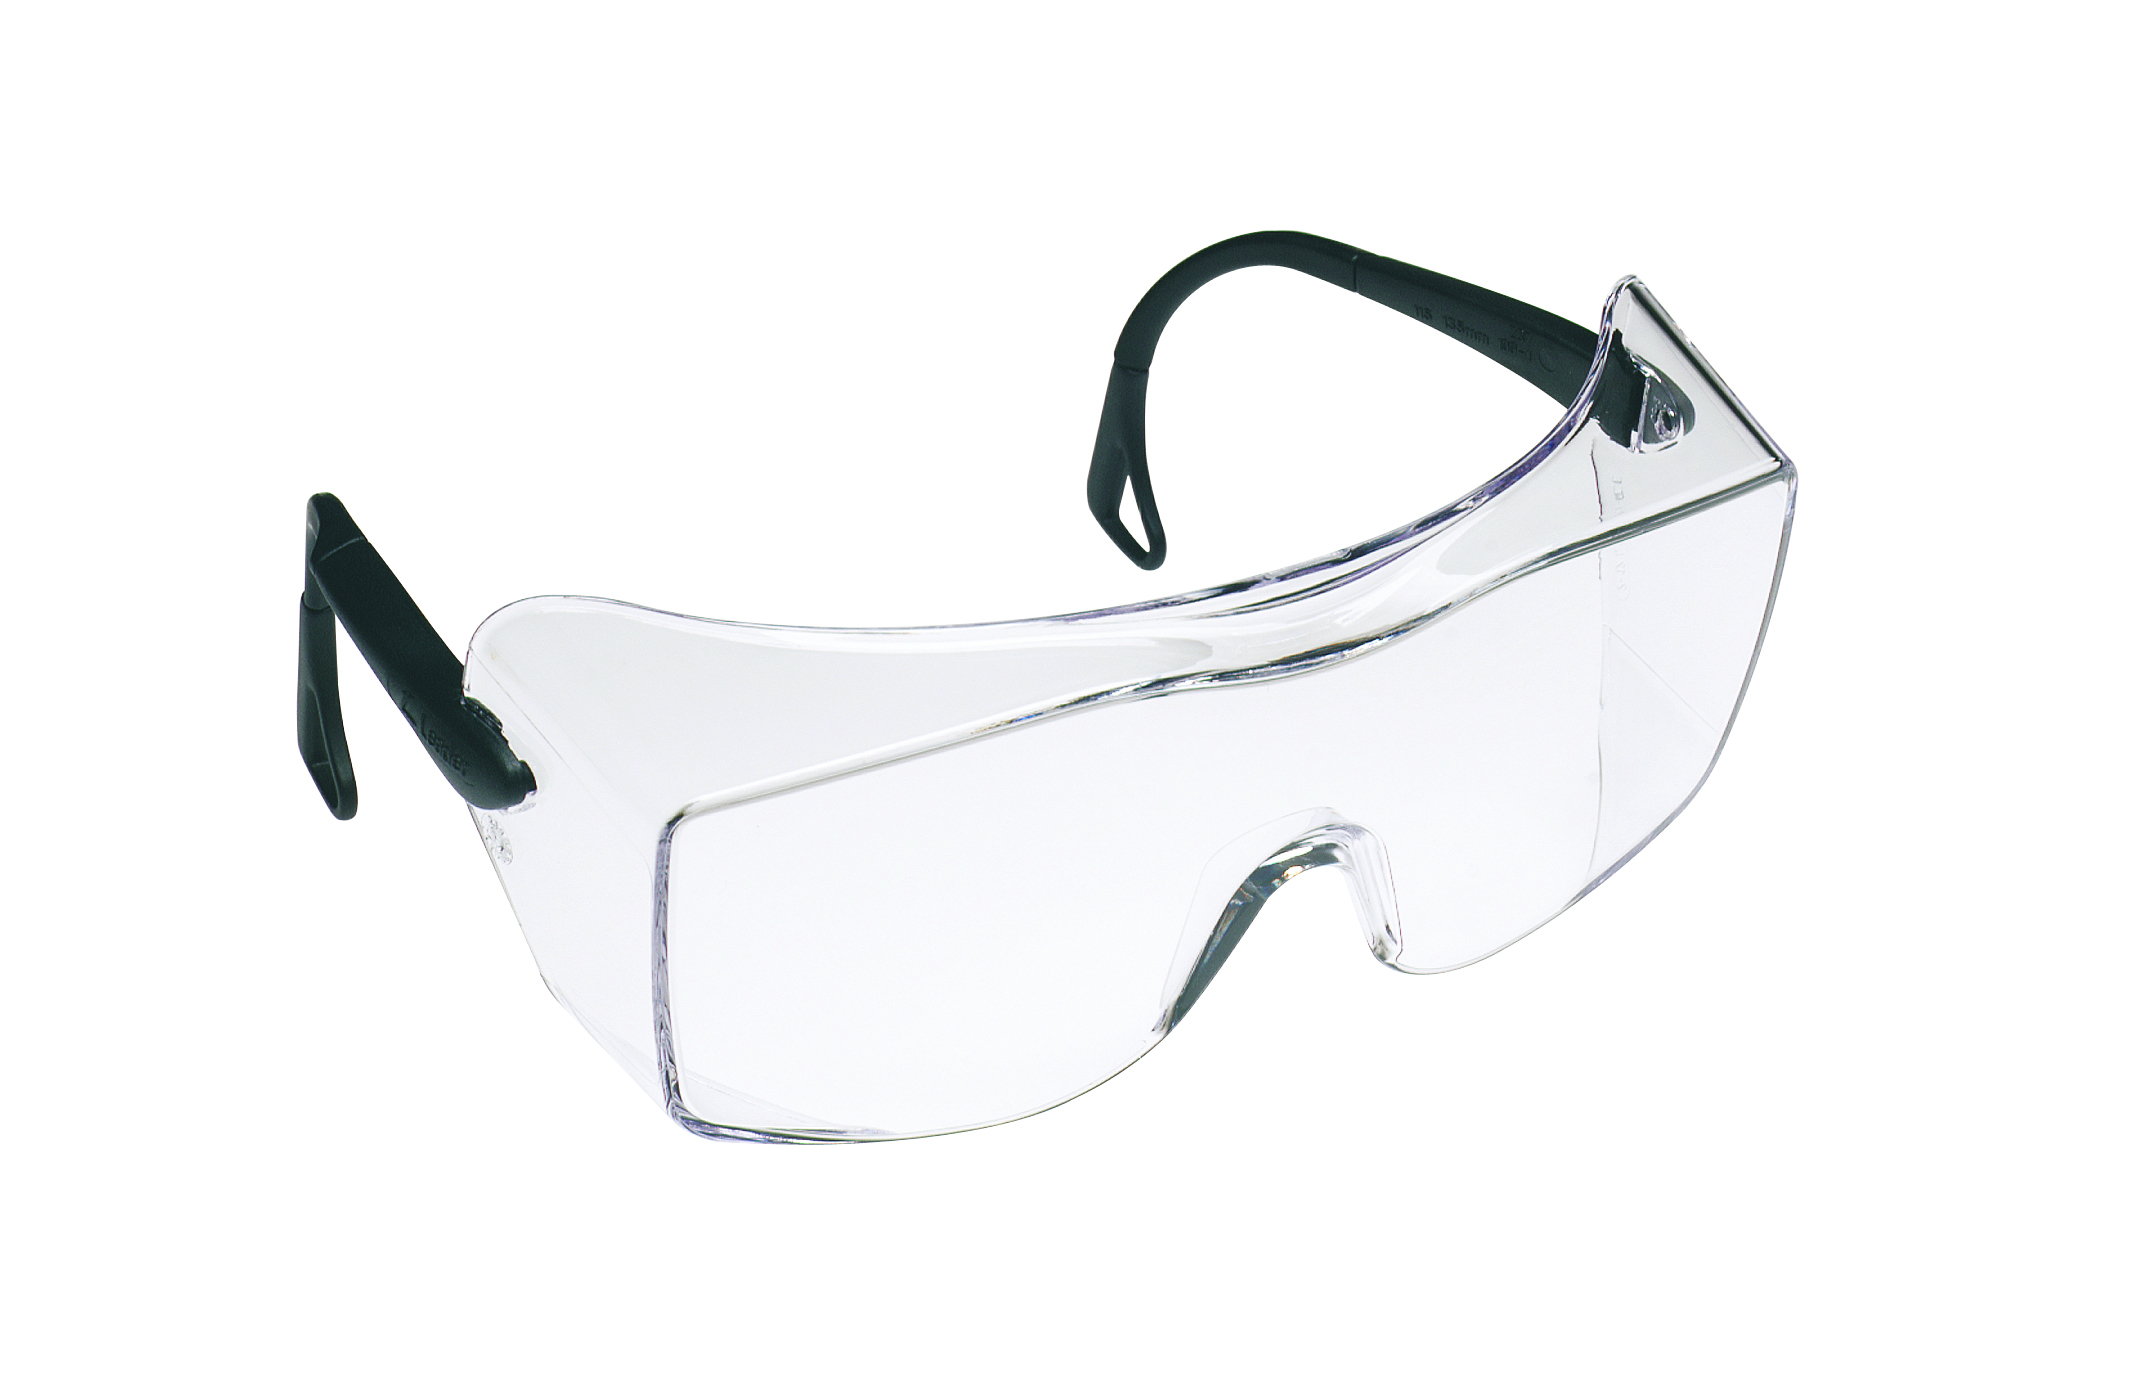 12159-00000-20 - 3M™ OX™ Safety Eyewear-Clear Lens, Black Temples-----UOM: 1/EA